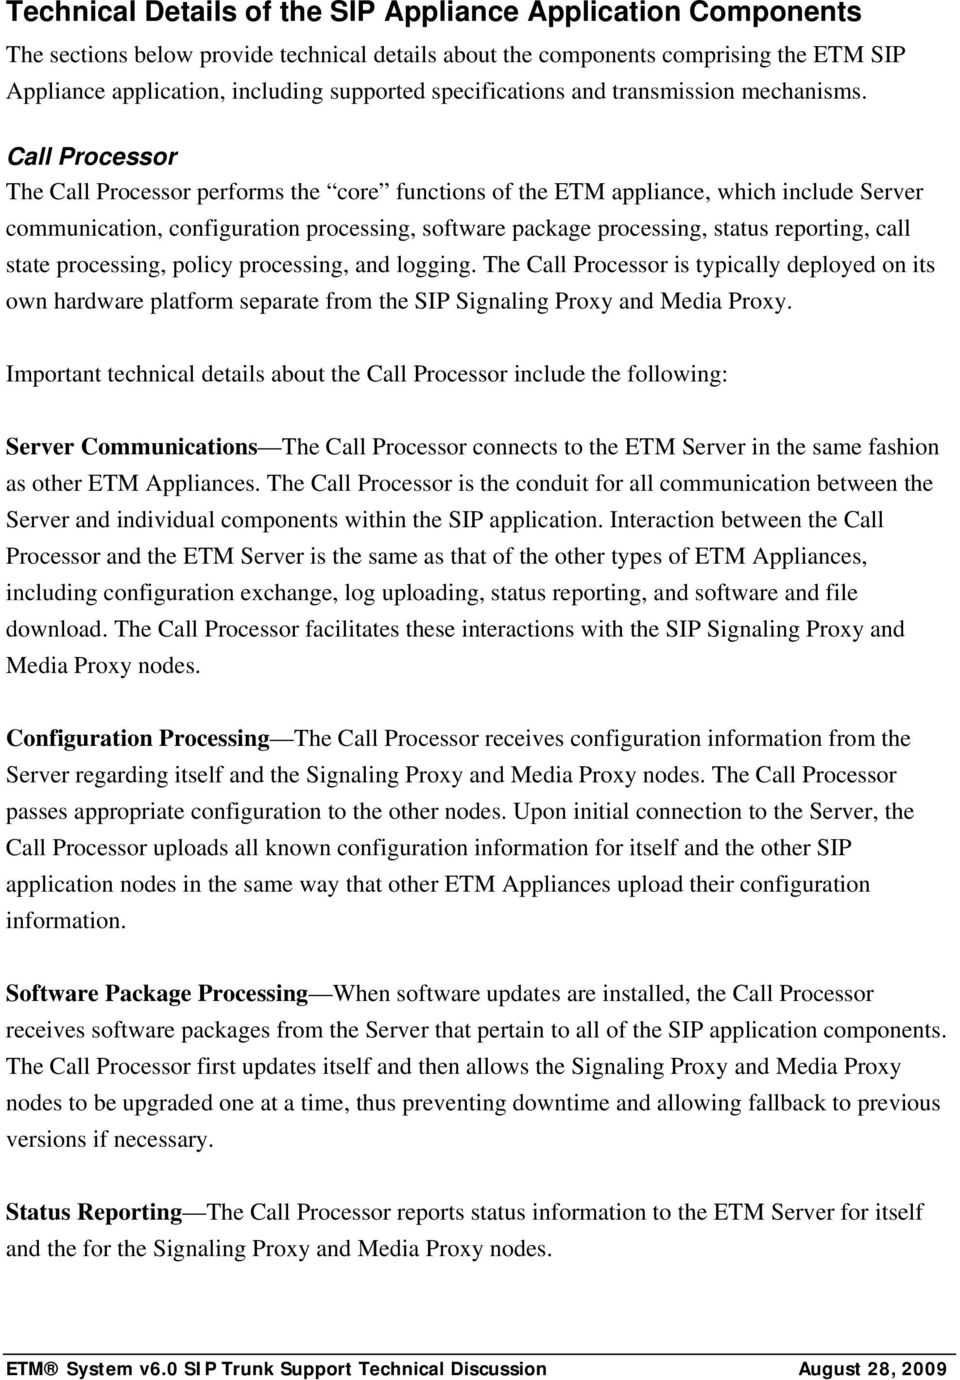 Call Processor The Call Processor performs the core functions of the ETM appliance, which include Server communication, configuration processing, software package processing, status reporting, call